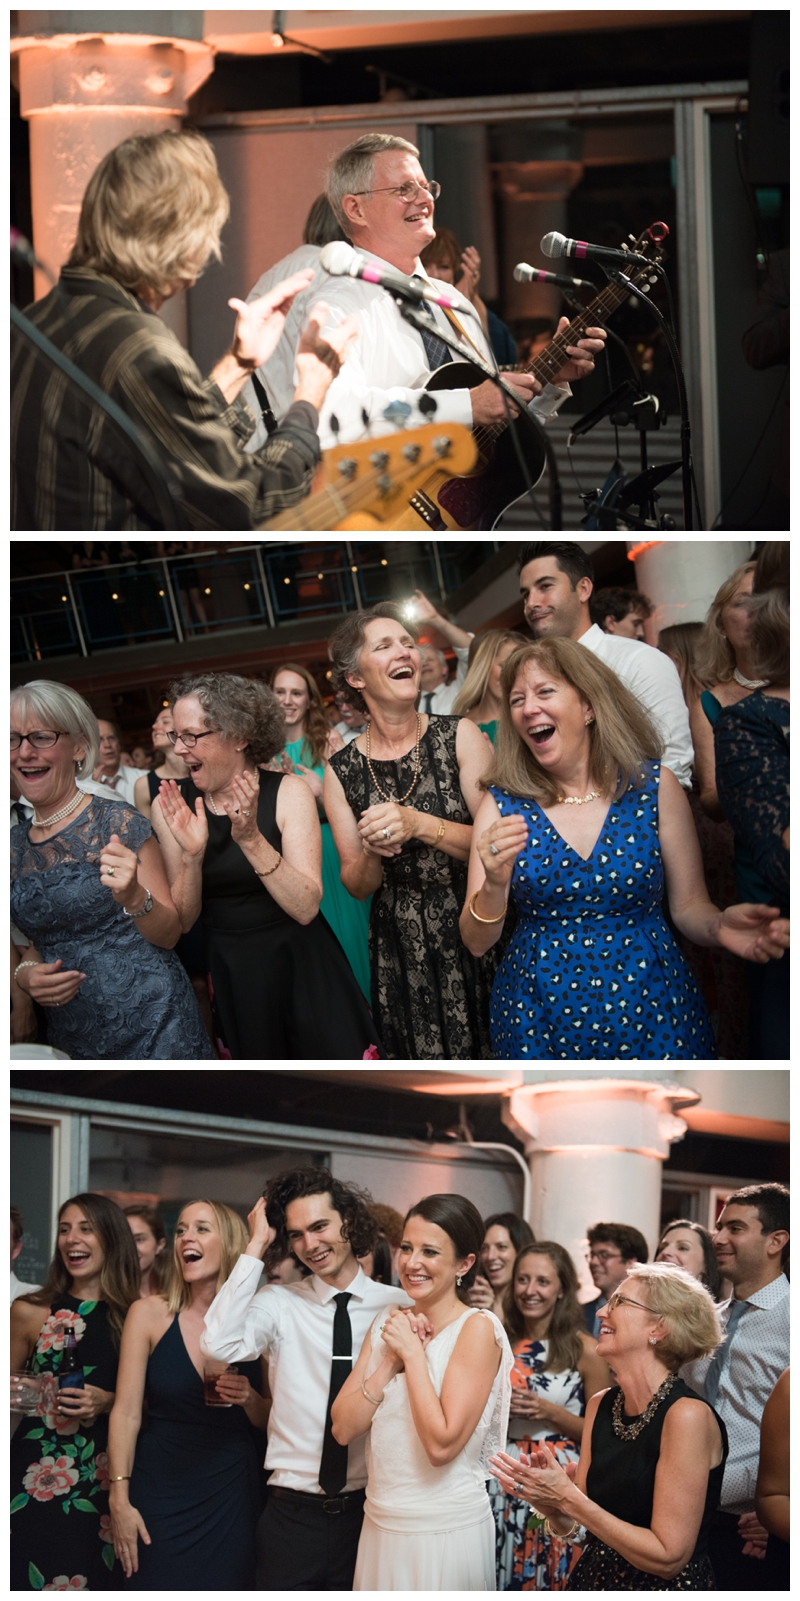 Wedding in Old Town Alexandria Virginia at the Torpedo Factory Art Center by Rachael Foster Photography_0101.jpg